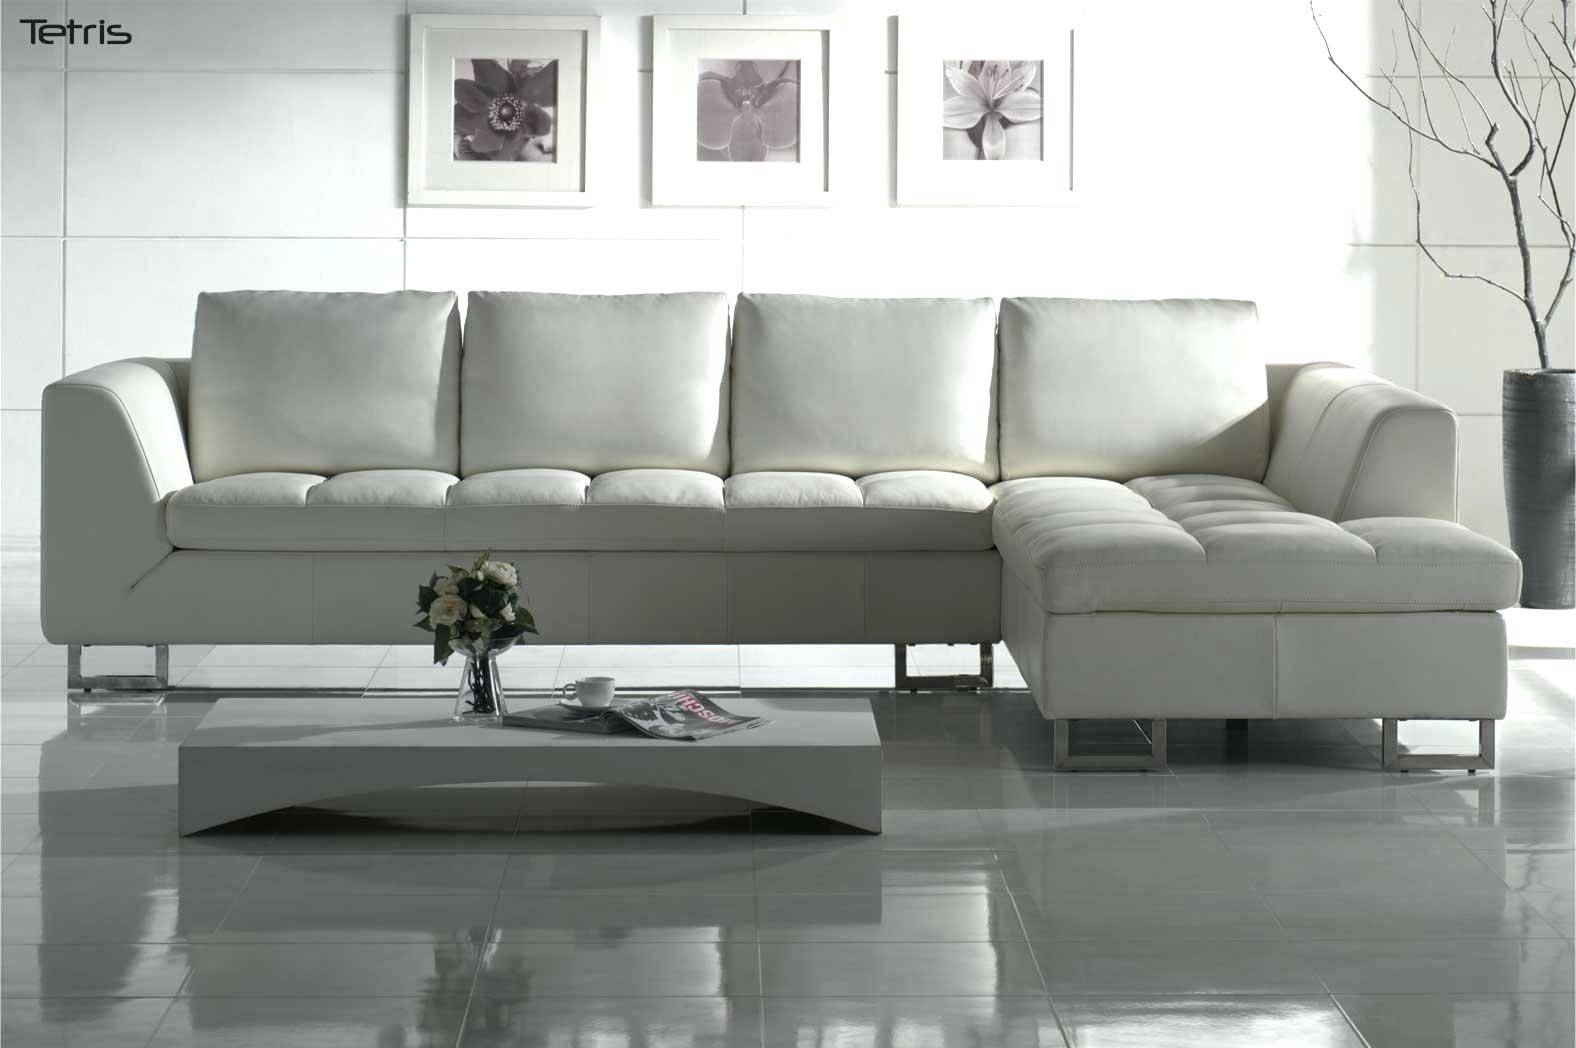 Light Tan Leather Couch. Furniture Inspiration Astonishing Right regarding Light Tan Leather Sofas (Image 20 of 30)